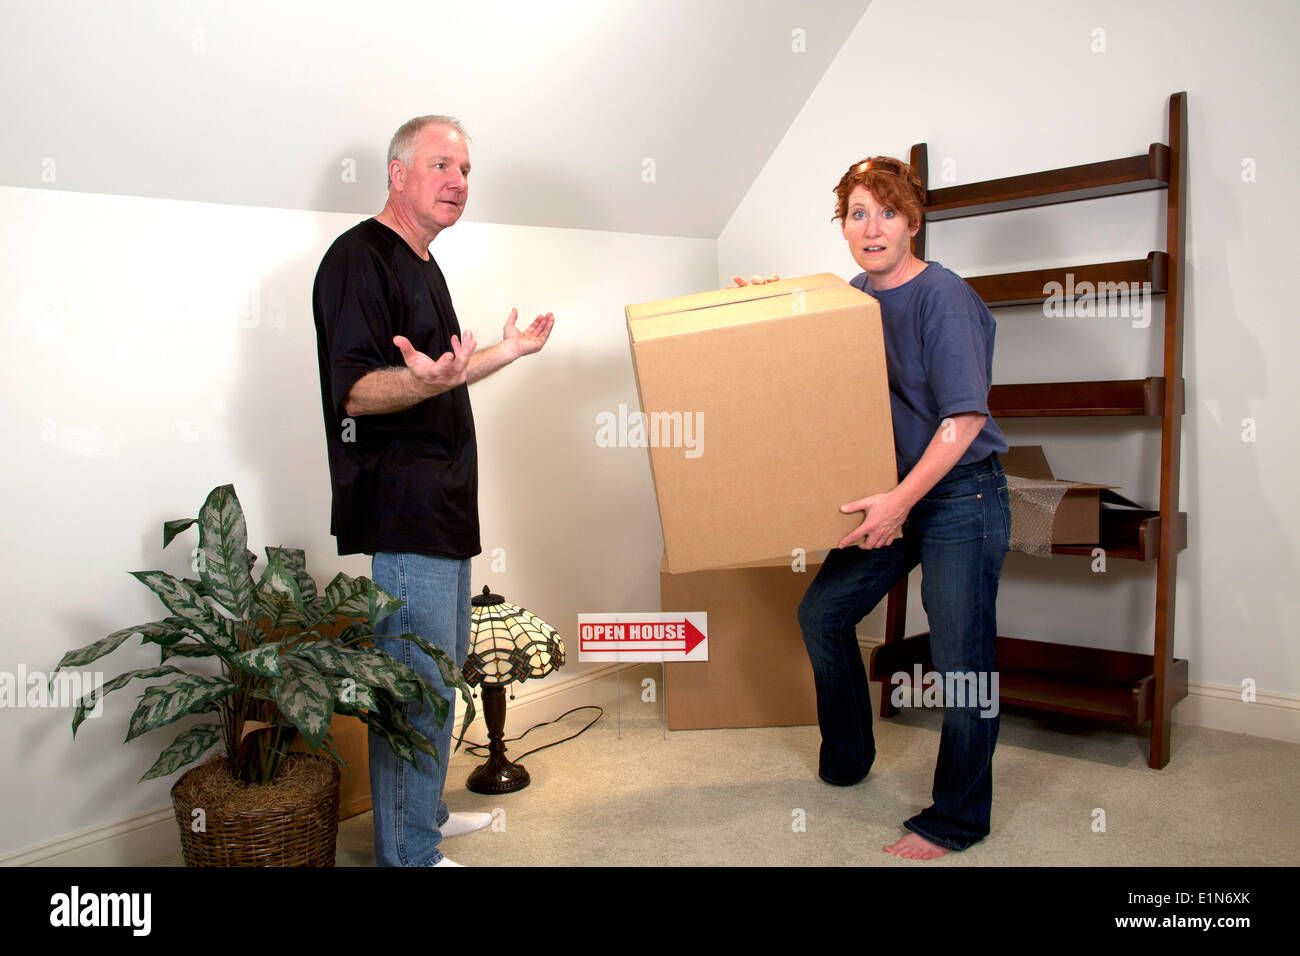 Woman carrying heavy boxes with man gesturing in room of their new home Stock Photo